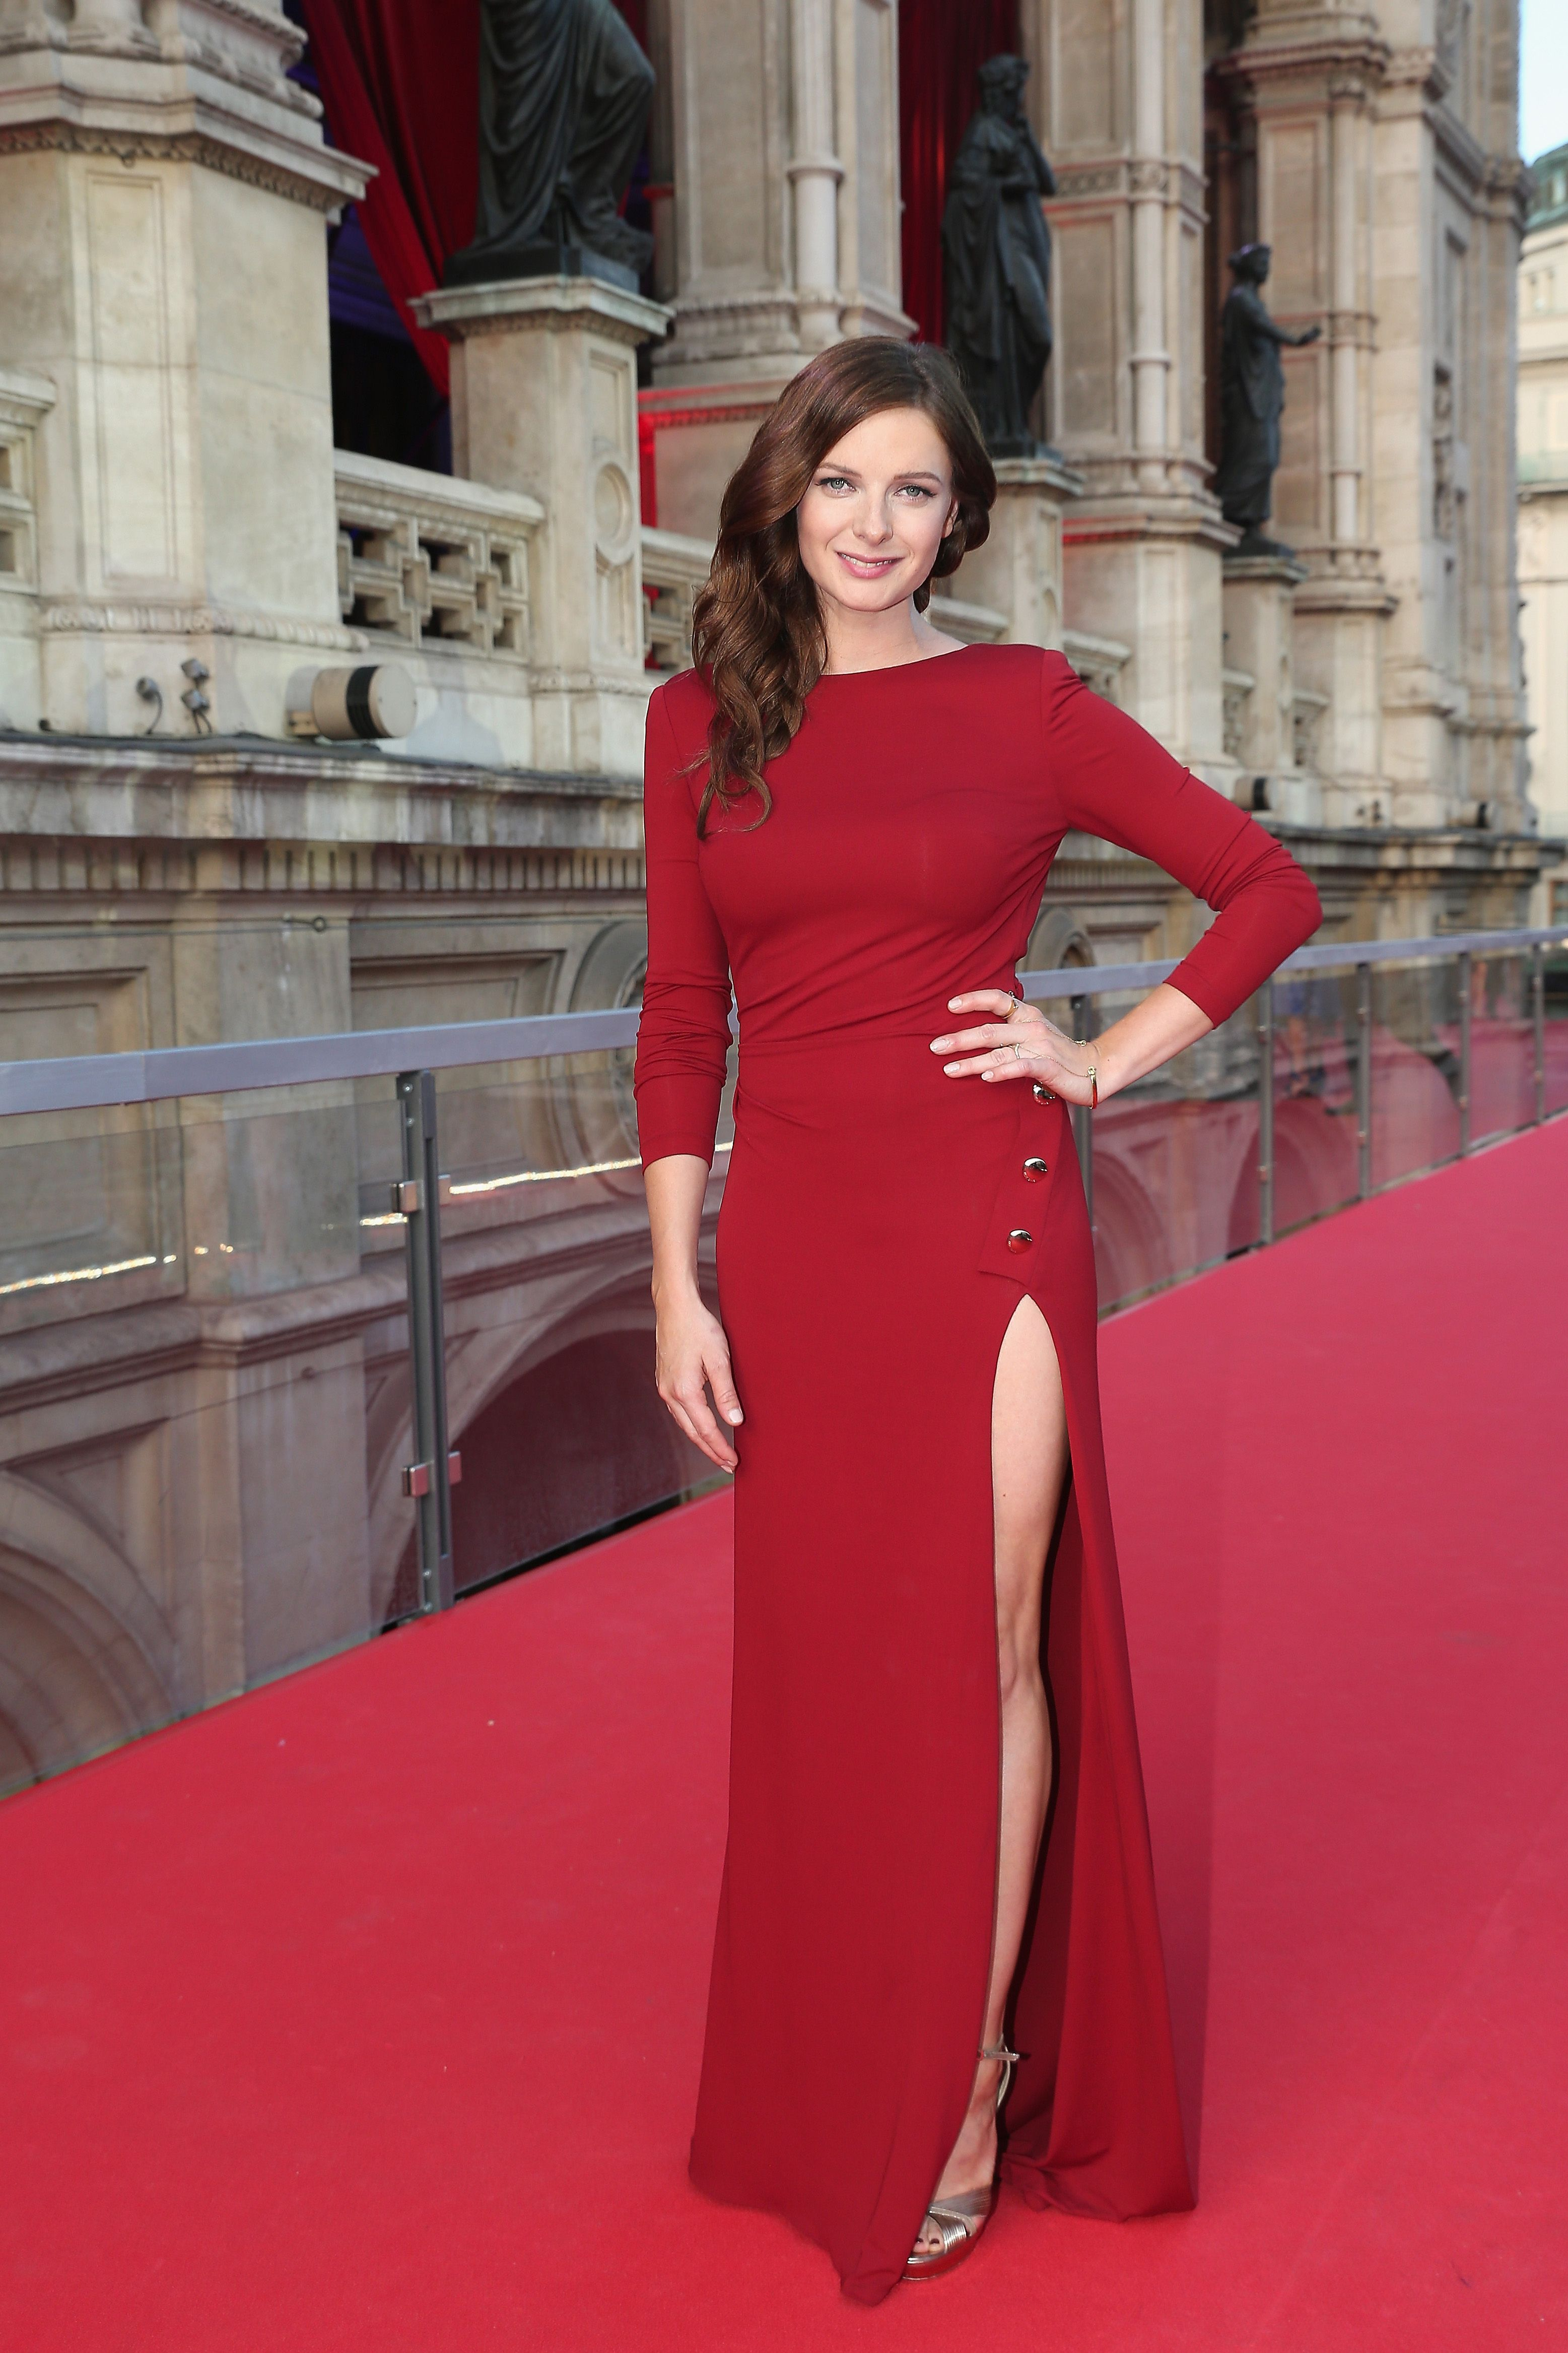 fa6aab054b1 Rebecca Ferguson wears ELIE SAAB Ready-to-Wear Autumn Winter 2015-16 to the  world premiere of  Mission  Impossible - Rogue Nation  in Vienna